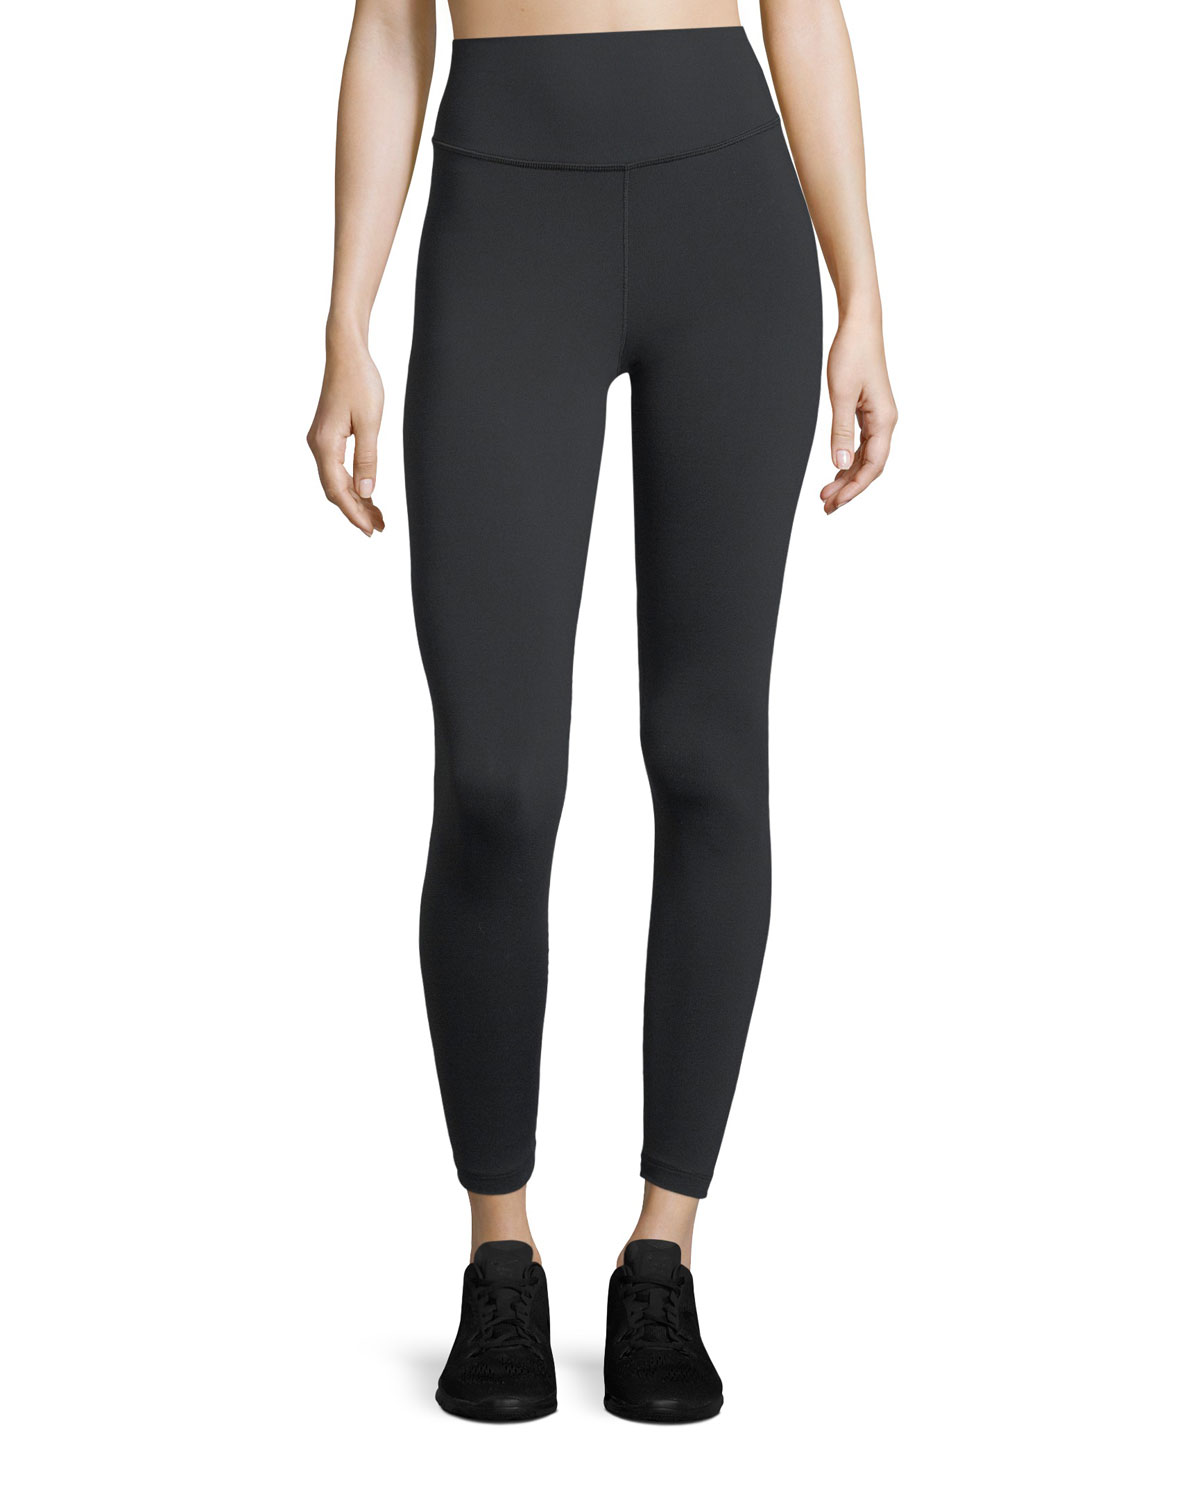 nike sculpt leggings 7/8